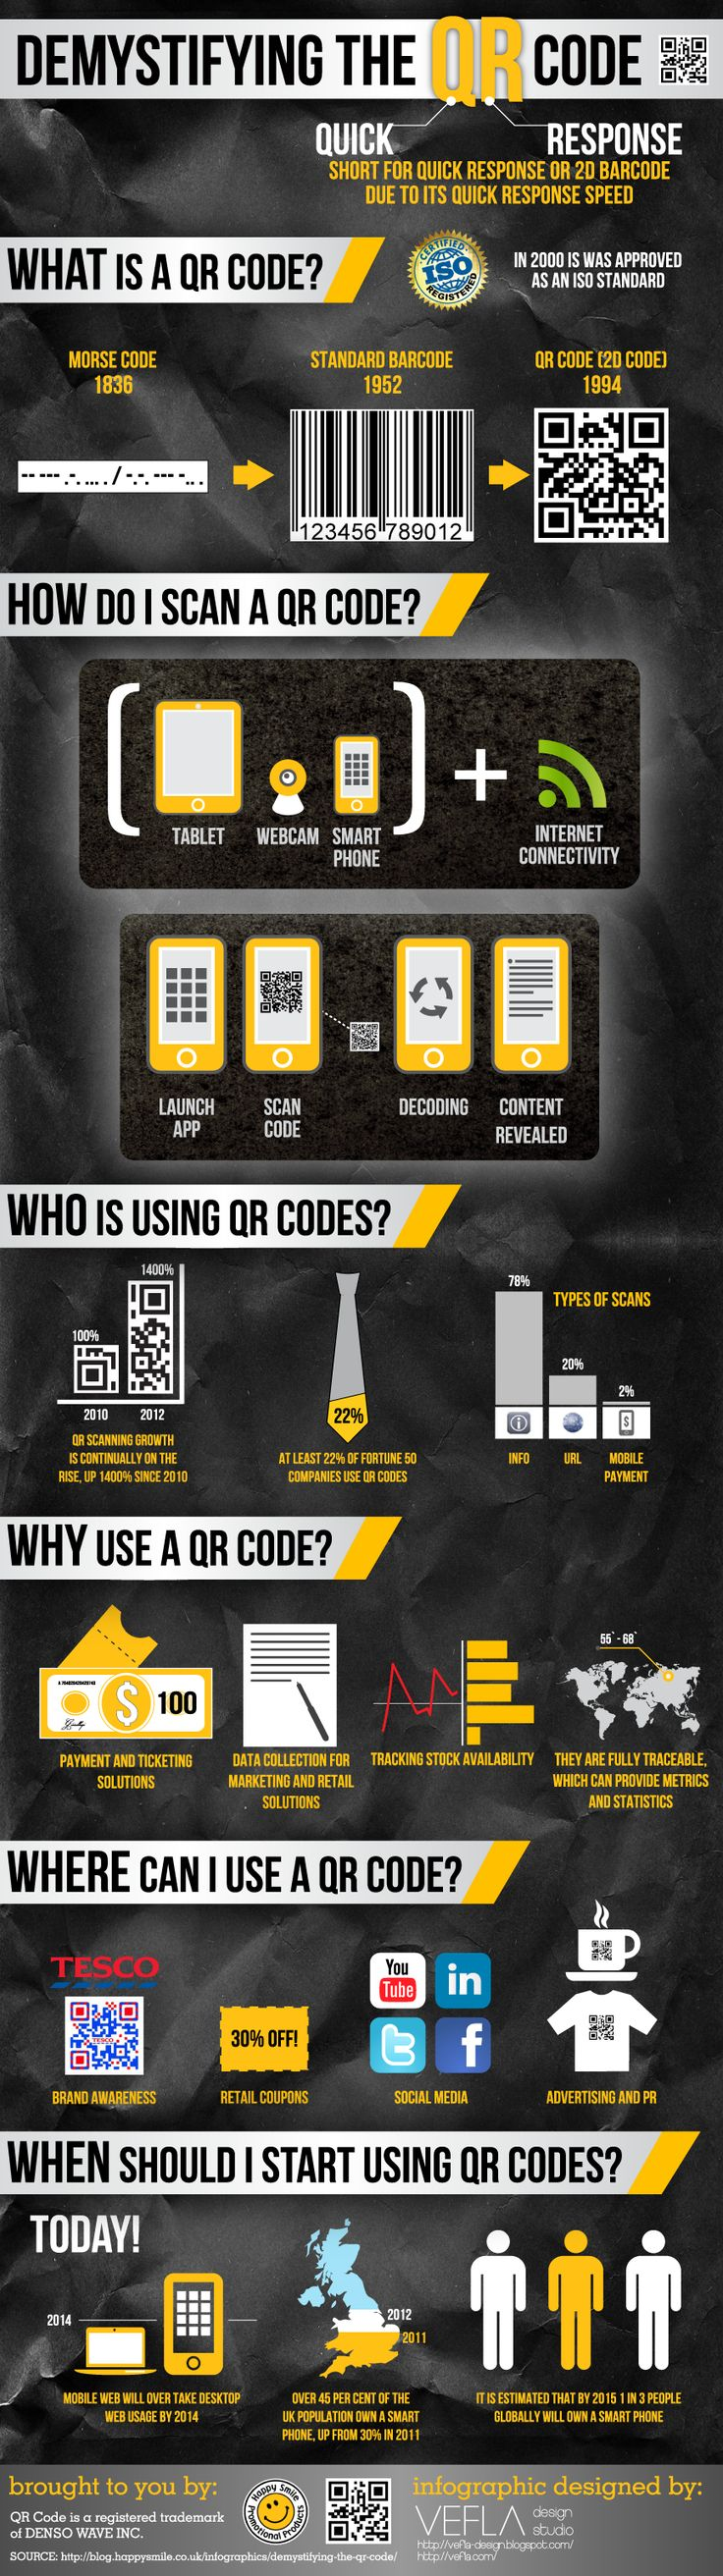 Demistifying the QR Code